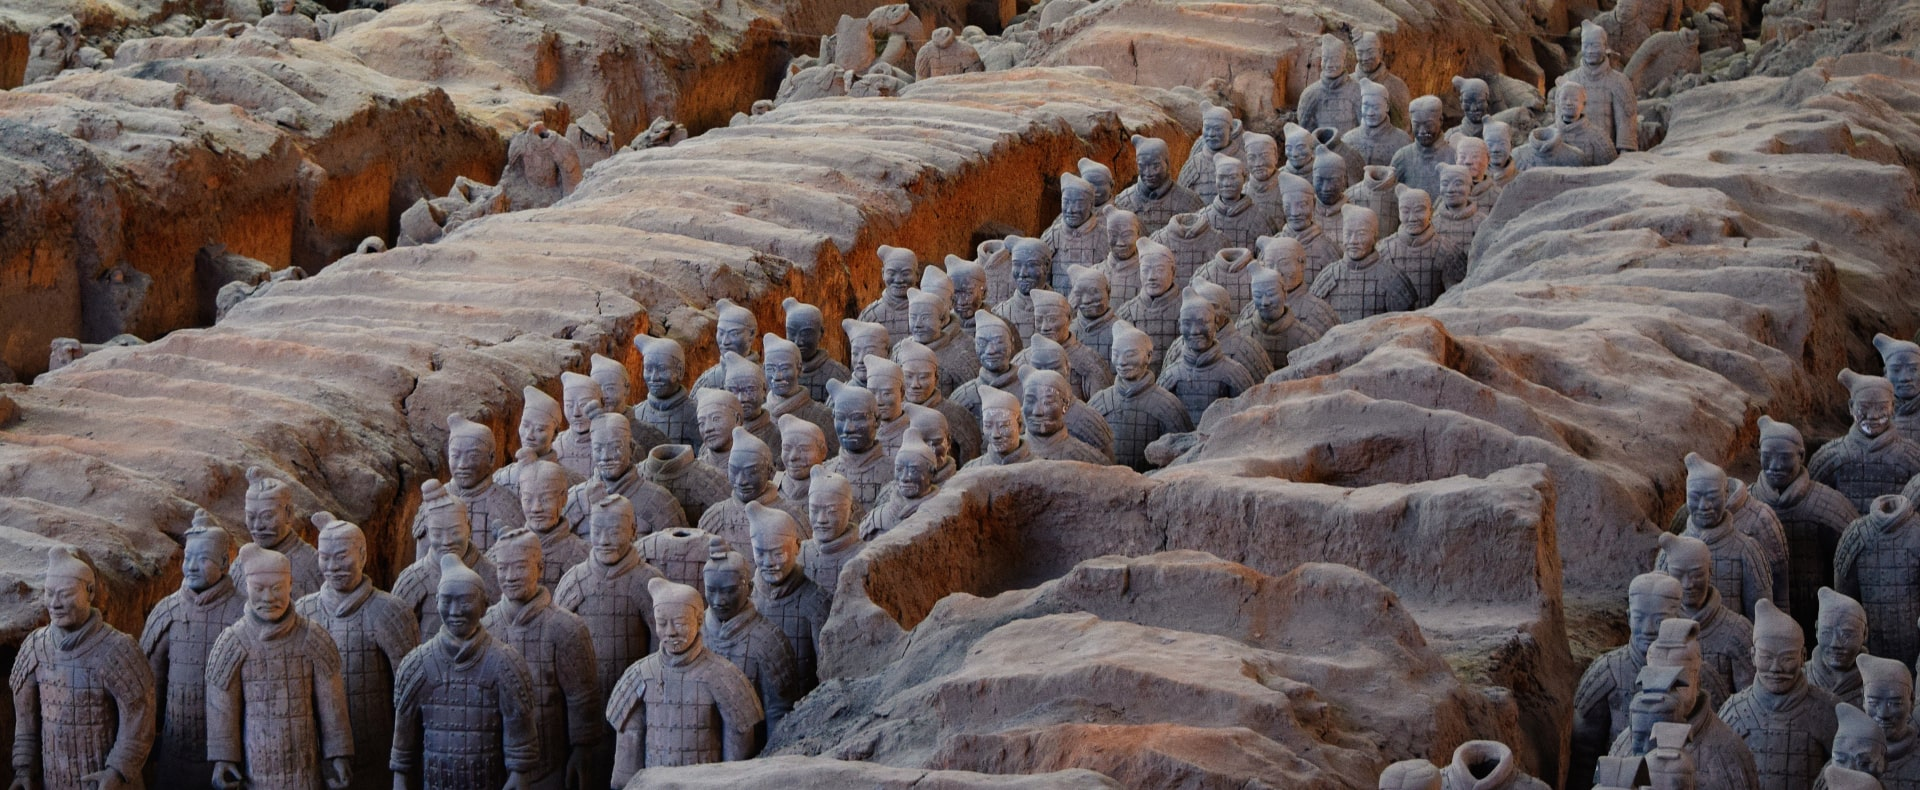 Terracotta Warriors, Xian, China Gallery